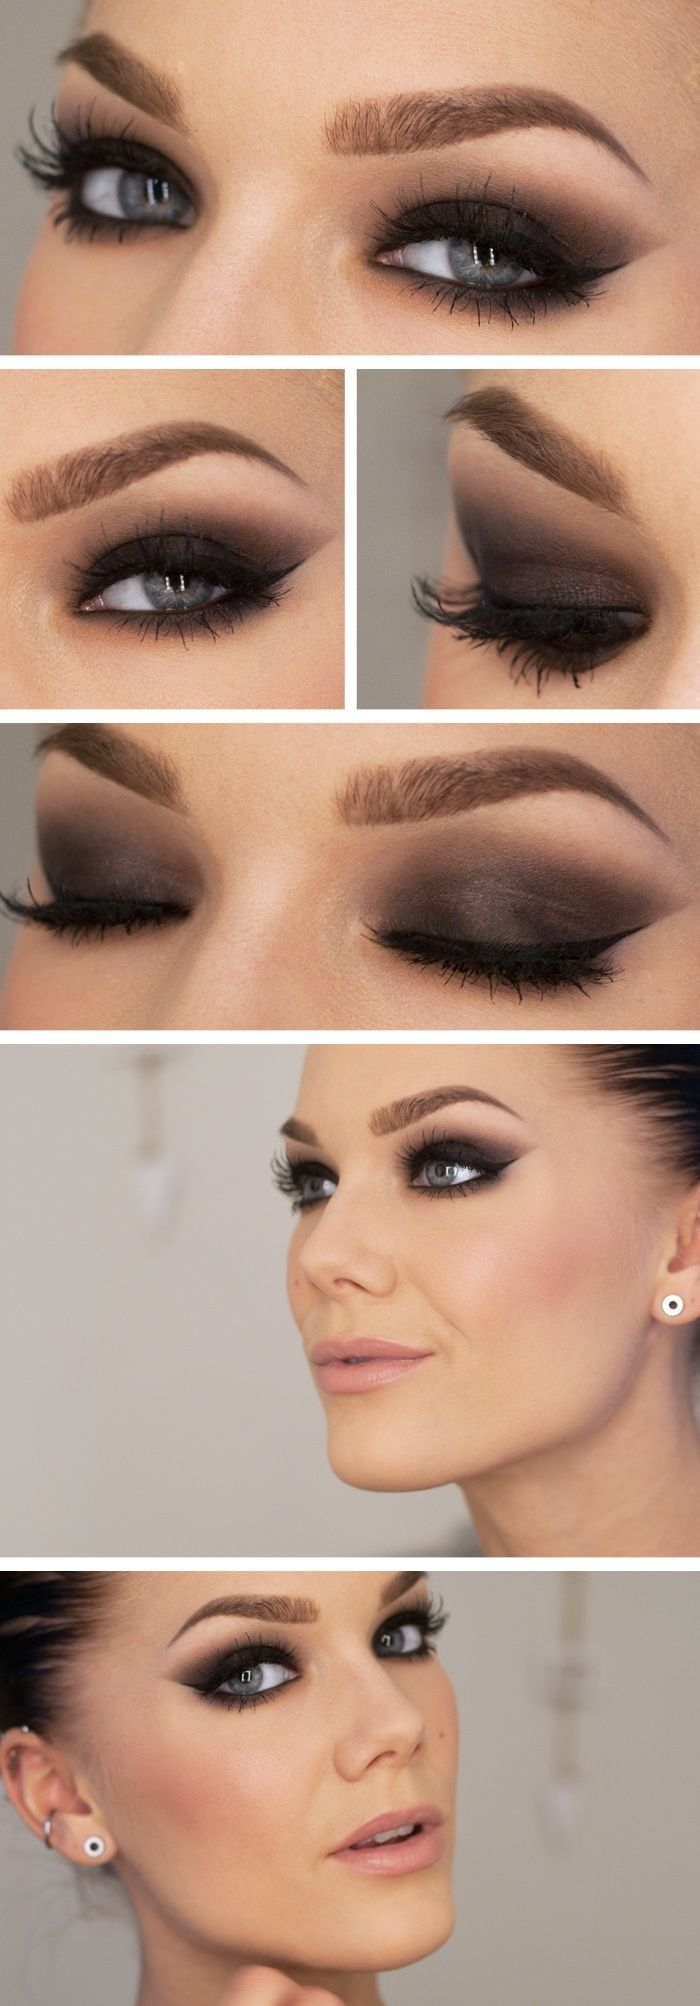 I Swear This Woman Can Do No Wrong With Makeup Love This